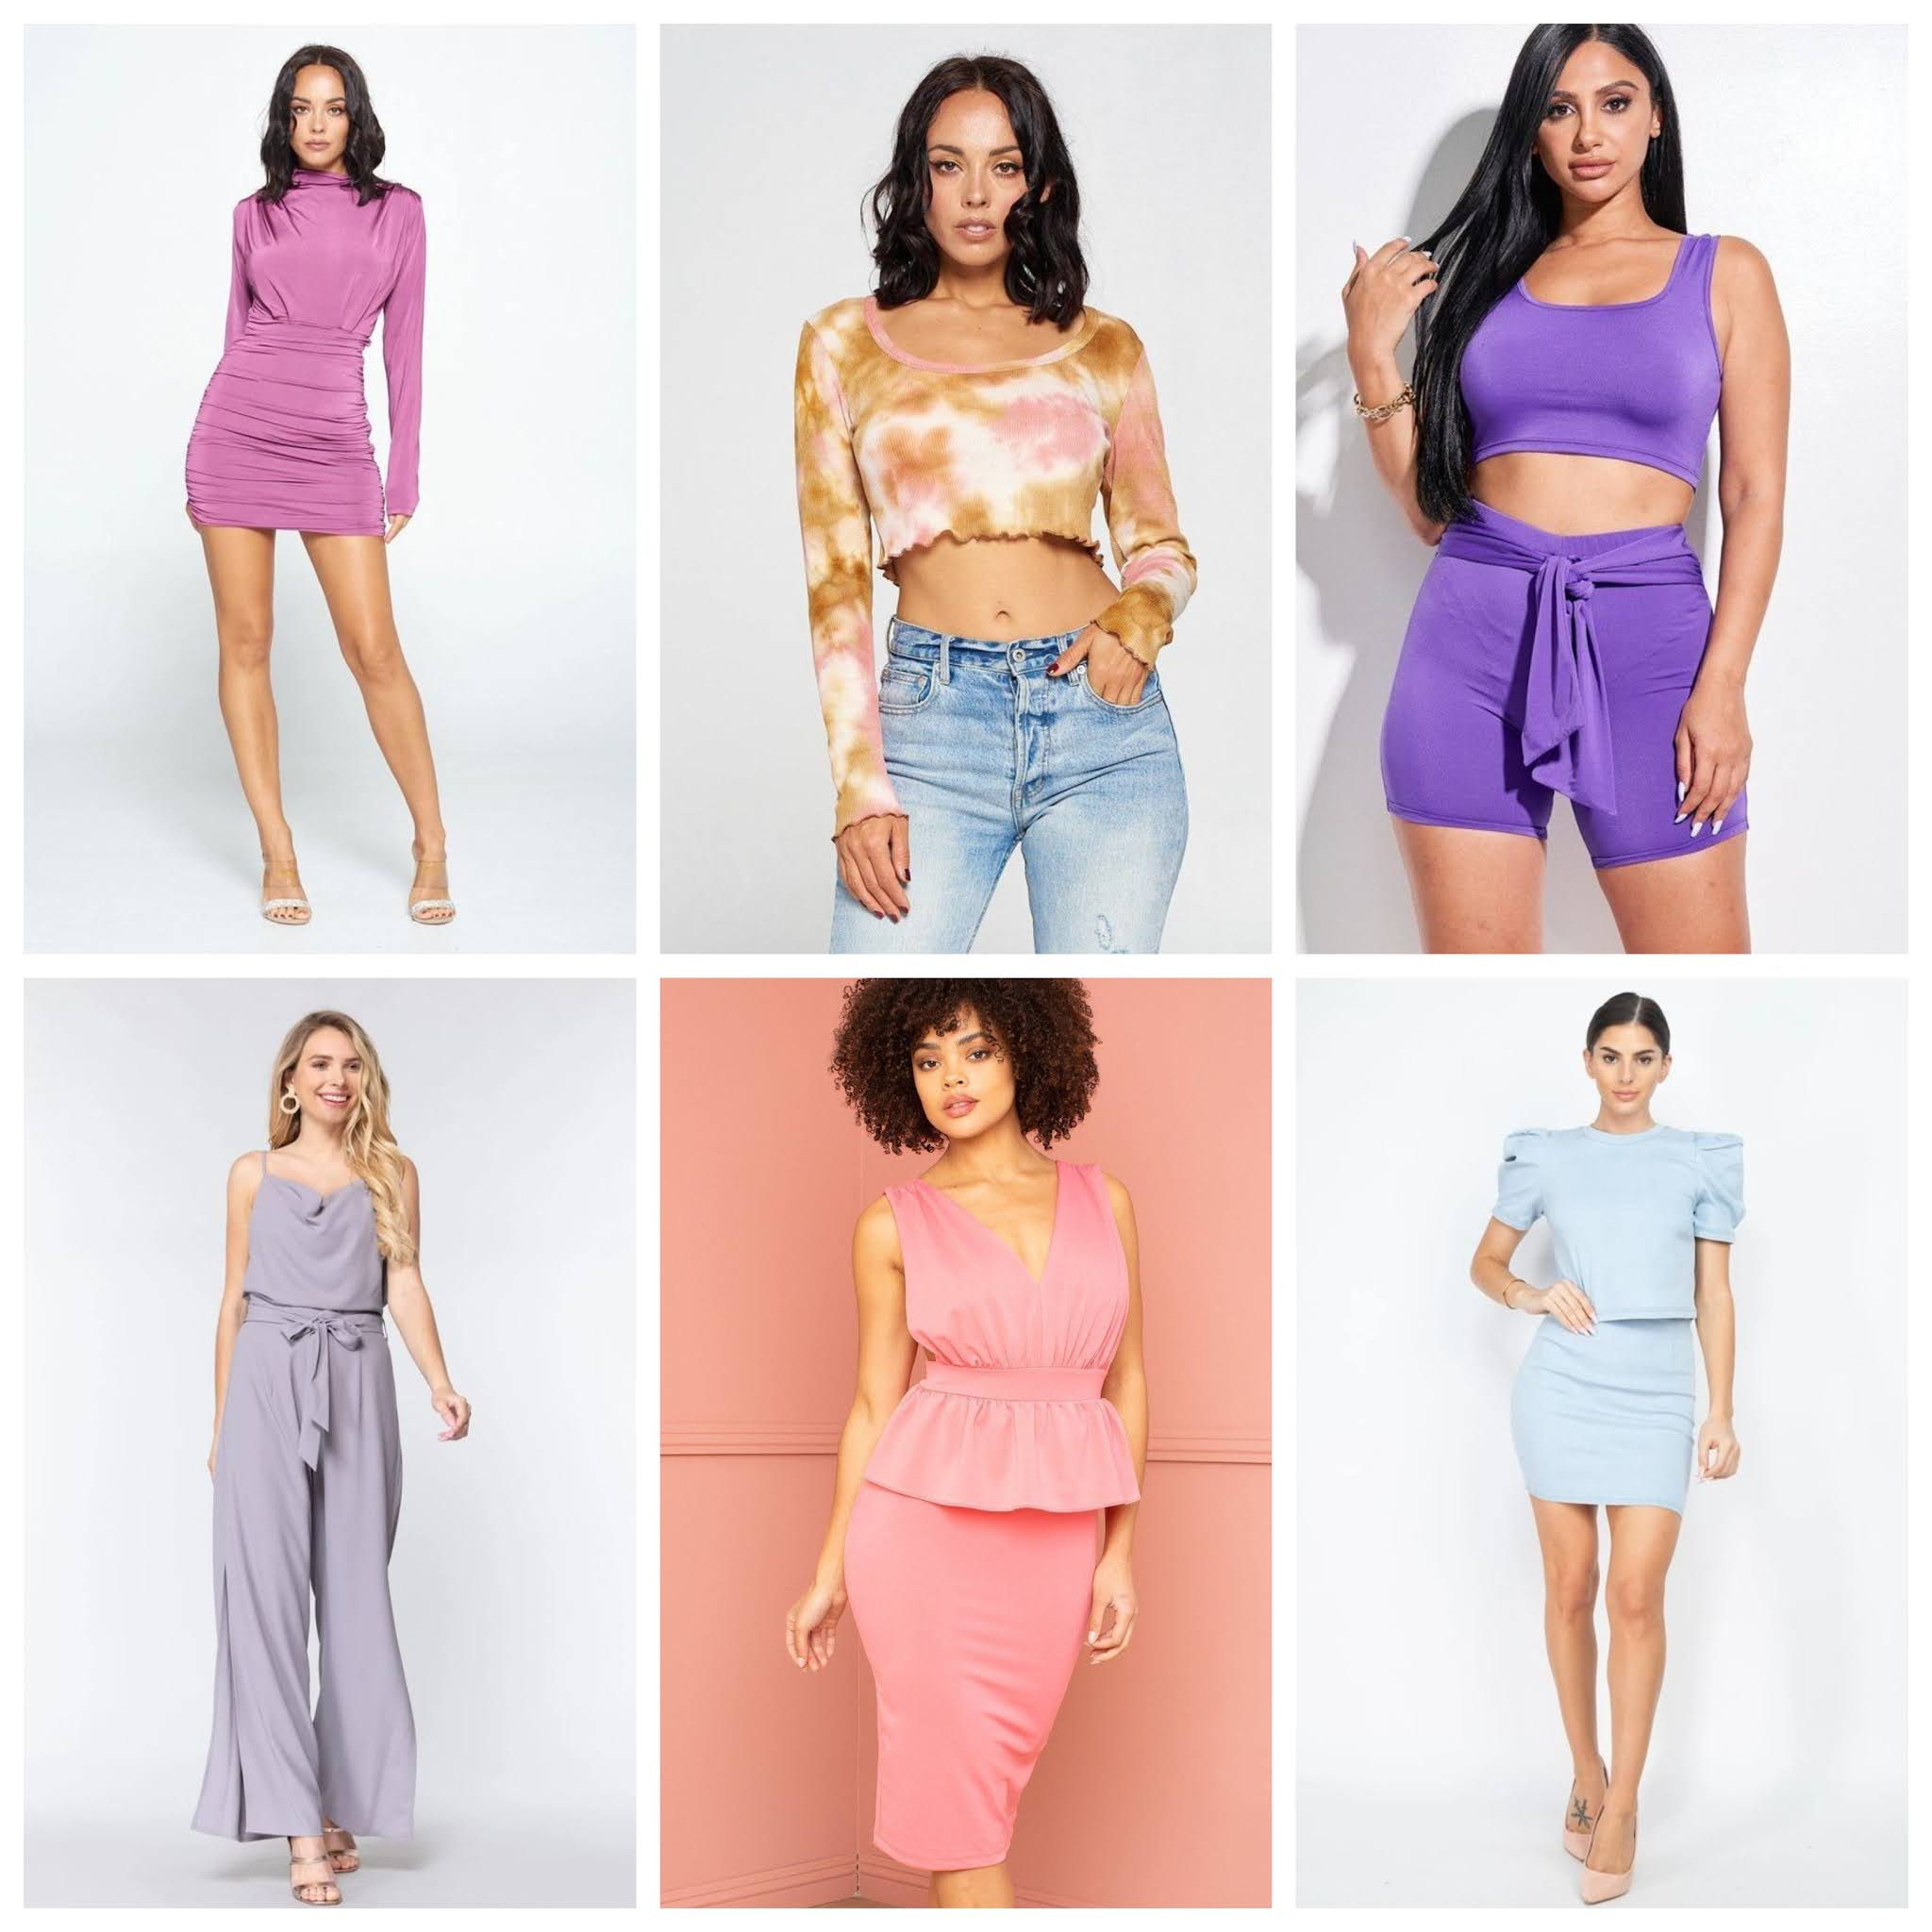 best 2021 fashion trends to shop online